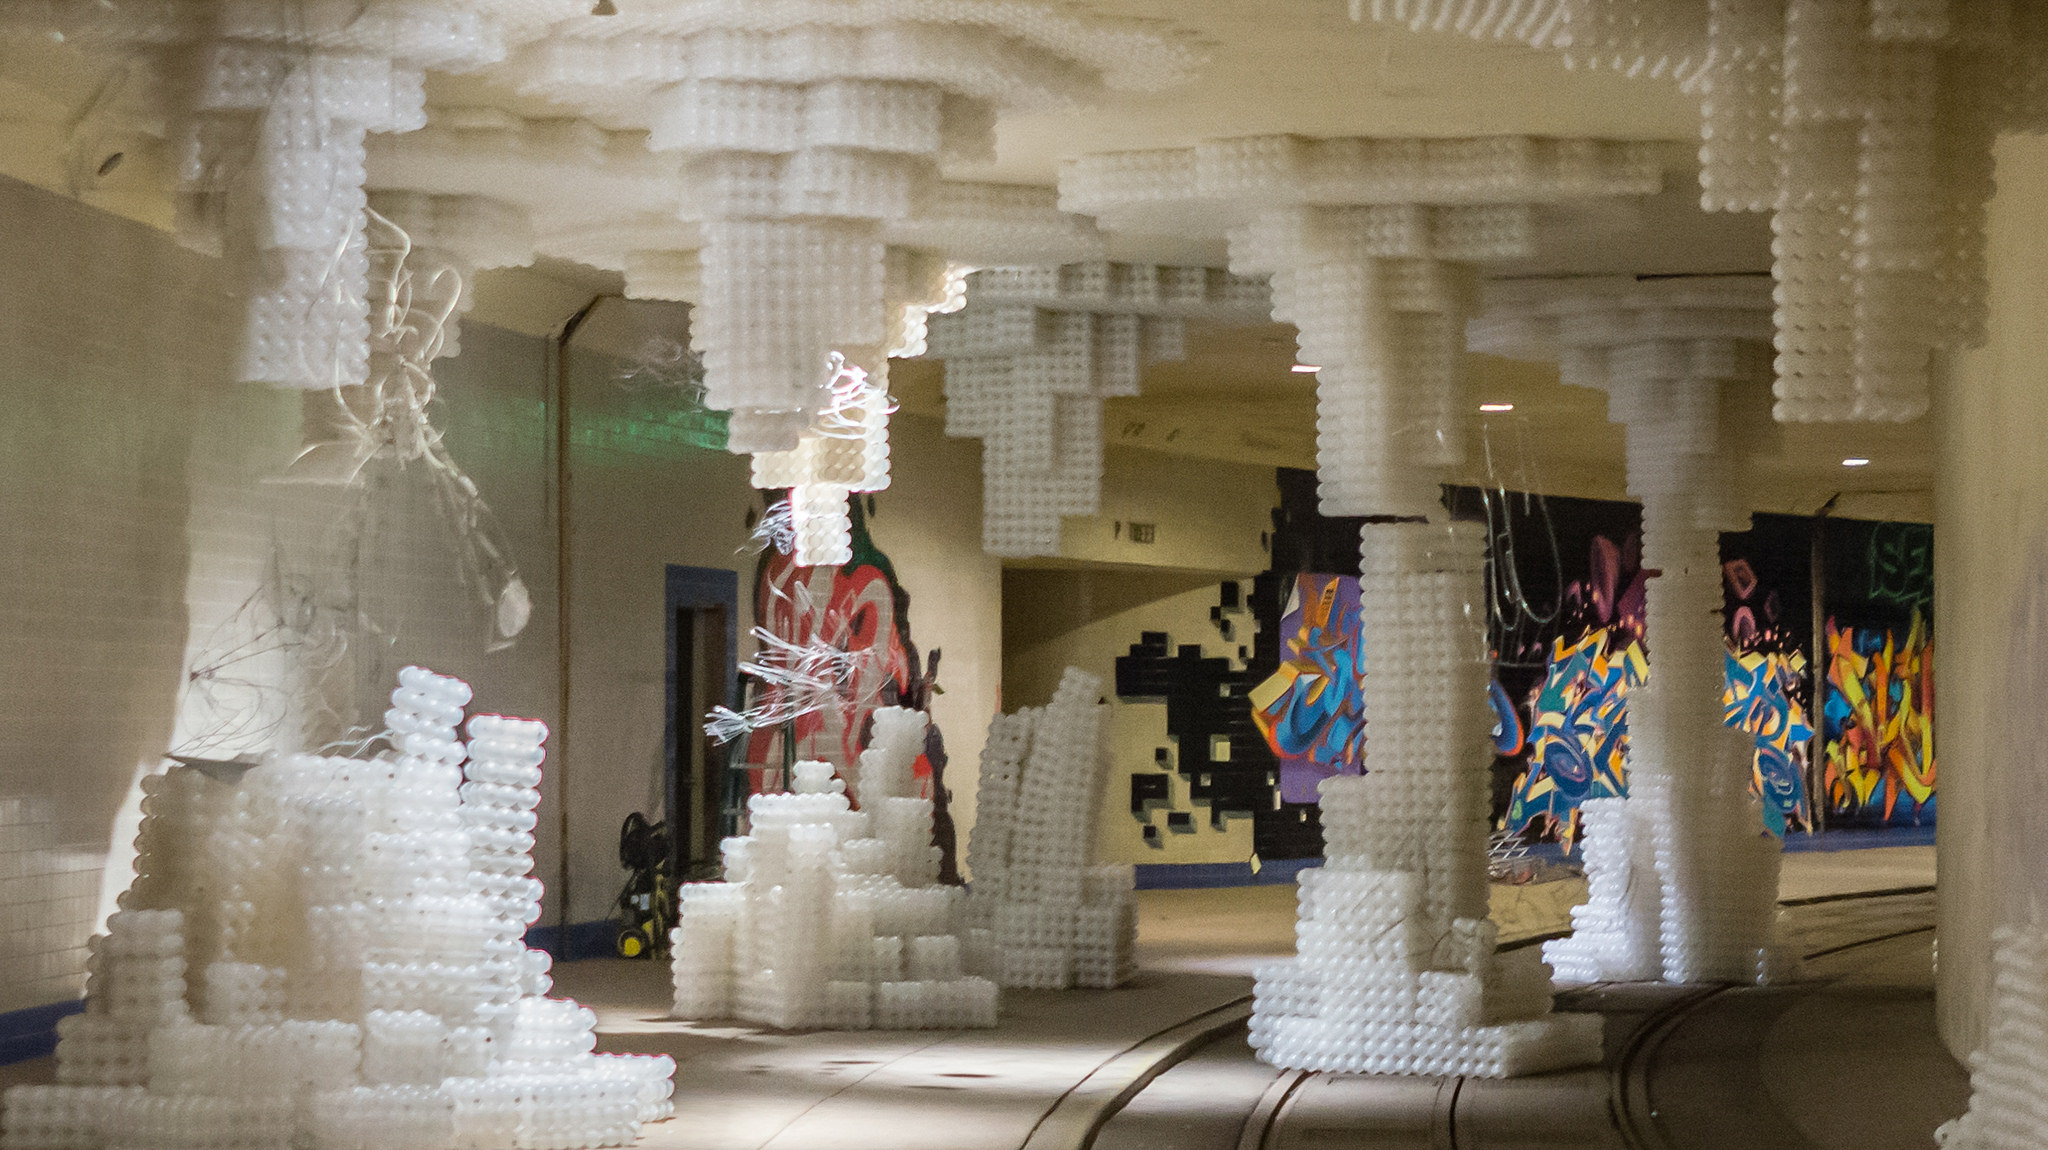 """In 2016 the Dupont Underground housed a temporary art exhibit called """"Re-Ball"""" with plastic stalagmites and stalactites. Photo:   Victoria Pickering   / CC BY-NC-ND 2.0"""